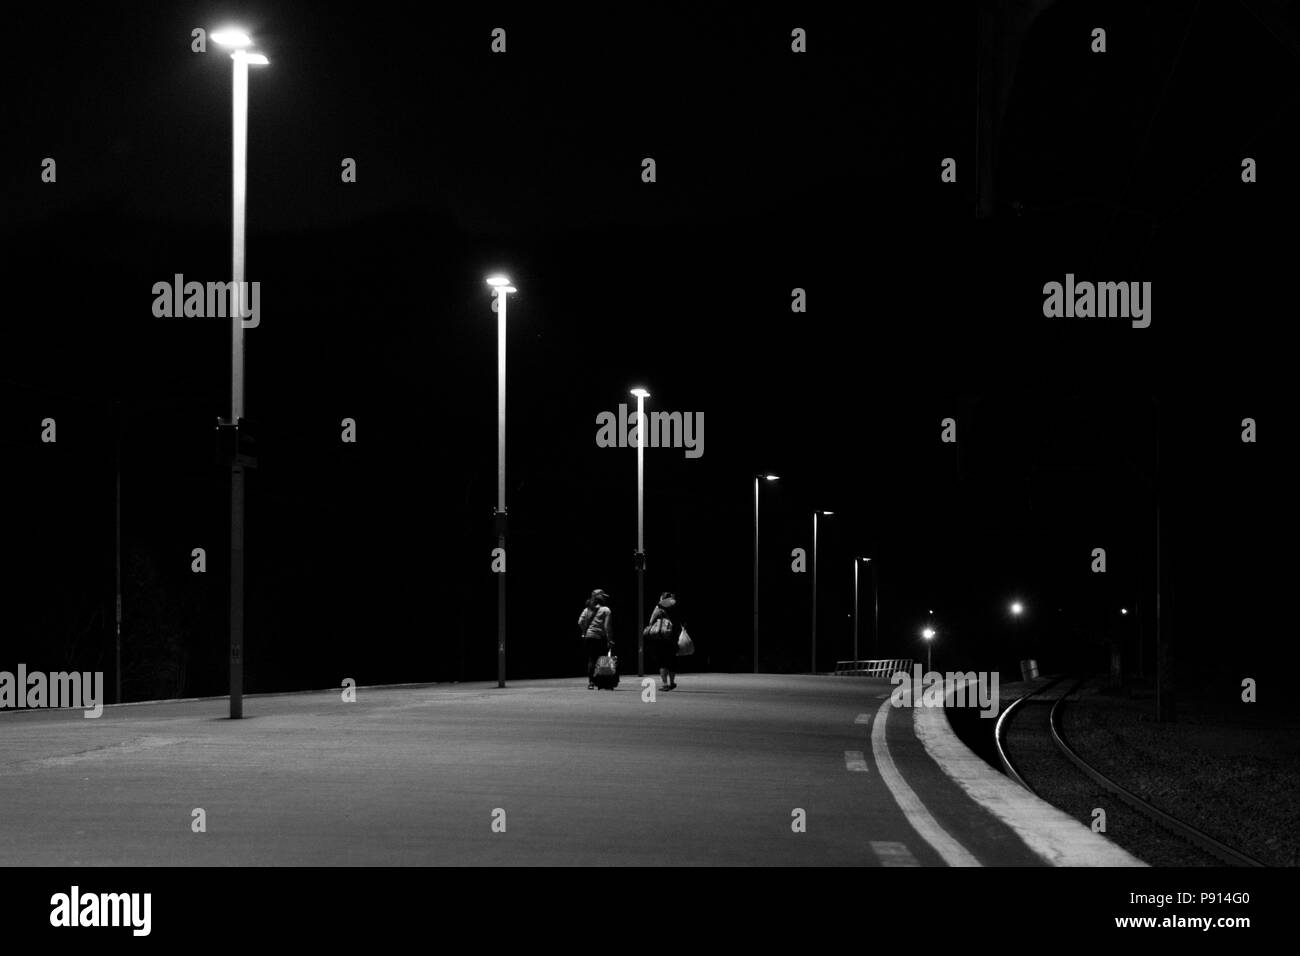 Two people walking down a train station at night carrying luggage with flood lights leading into the distance - Stock Image